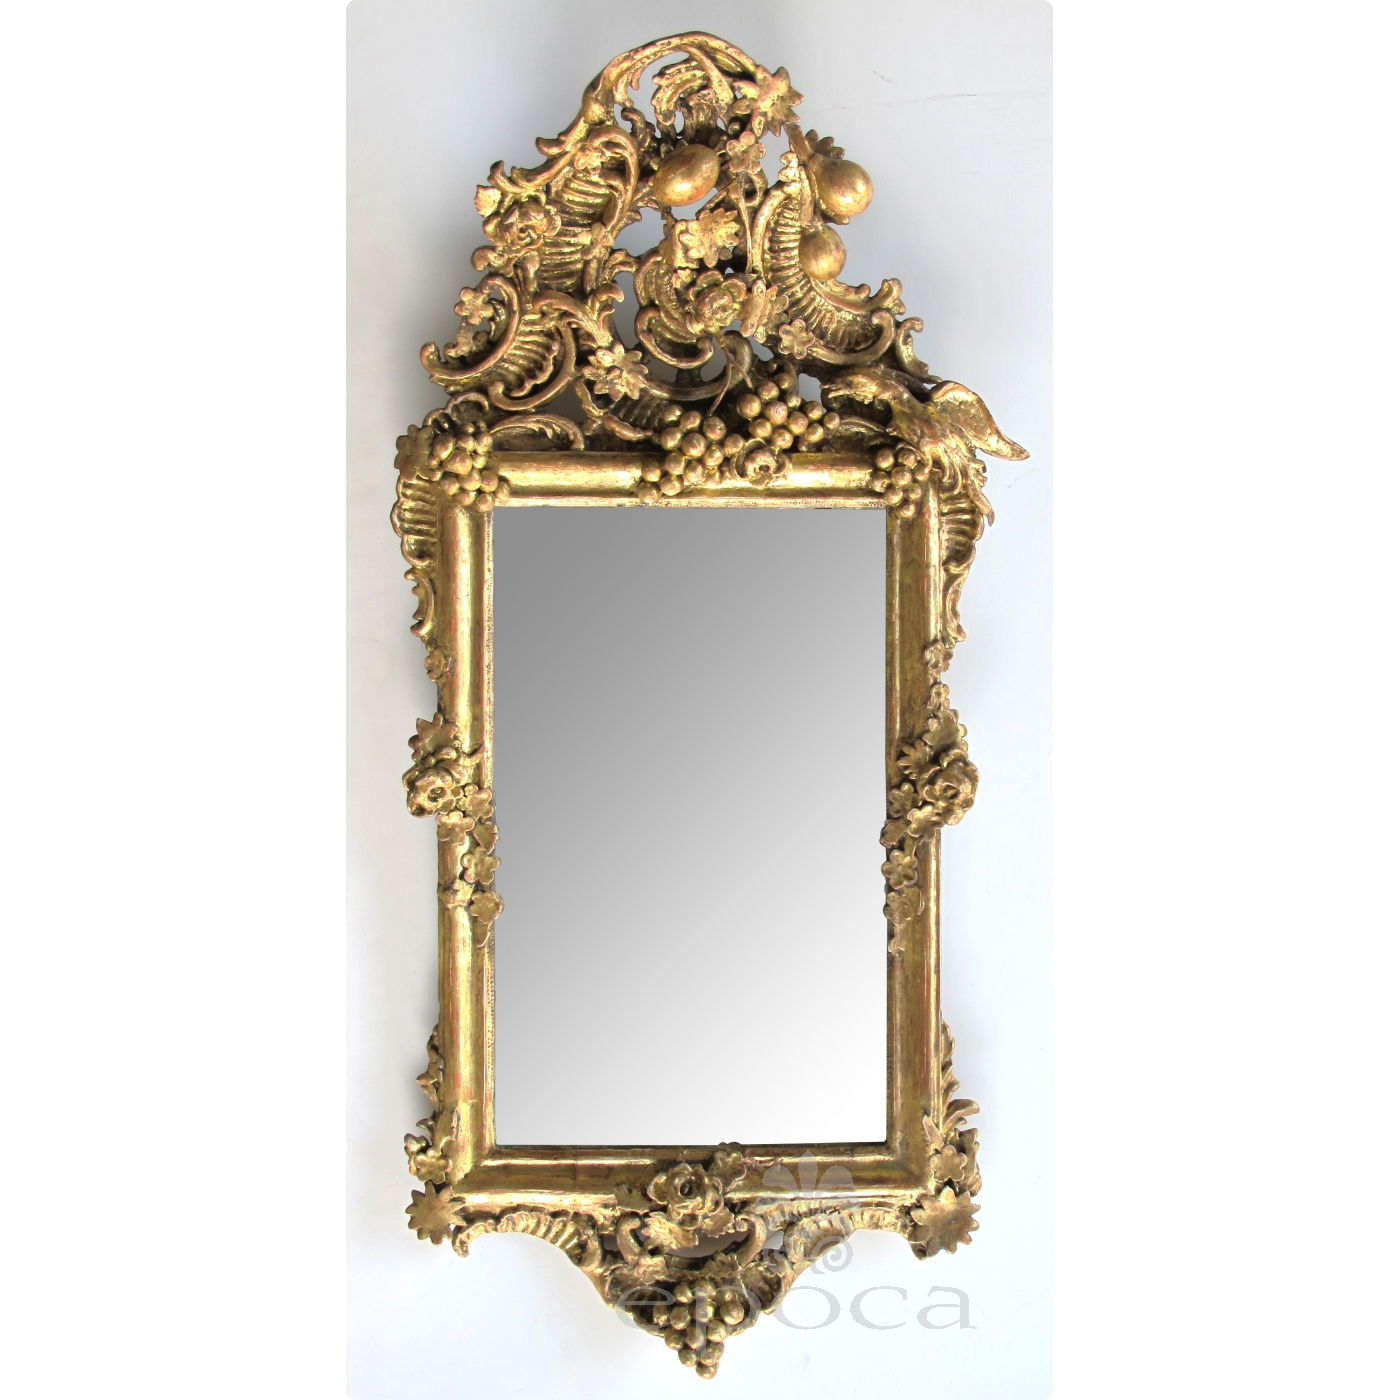 An Ornately Carved French Rococo Gilt Wood Mirror With